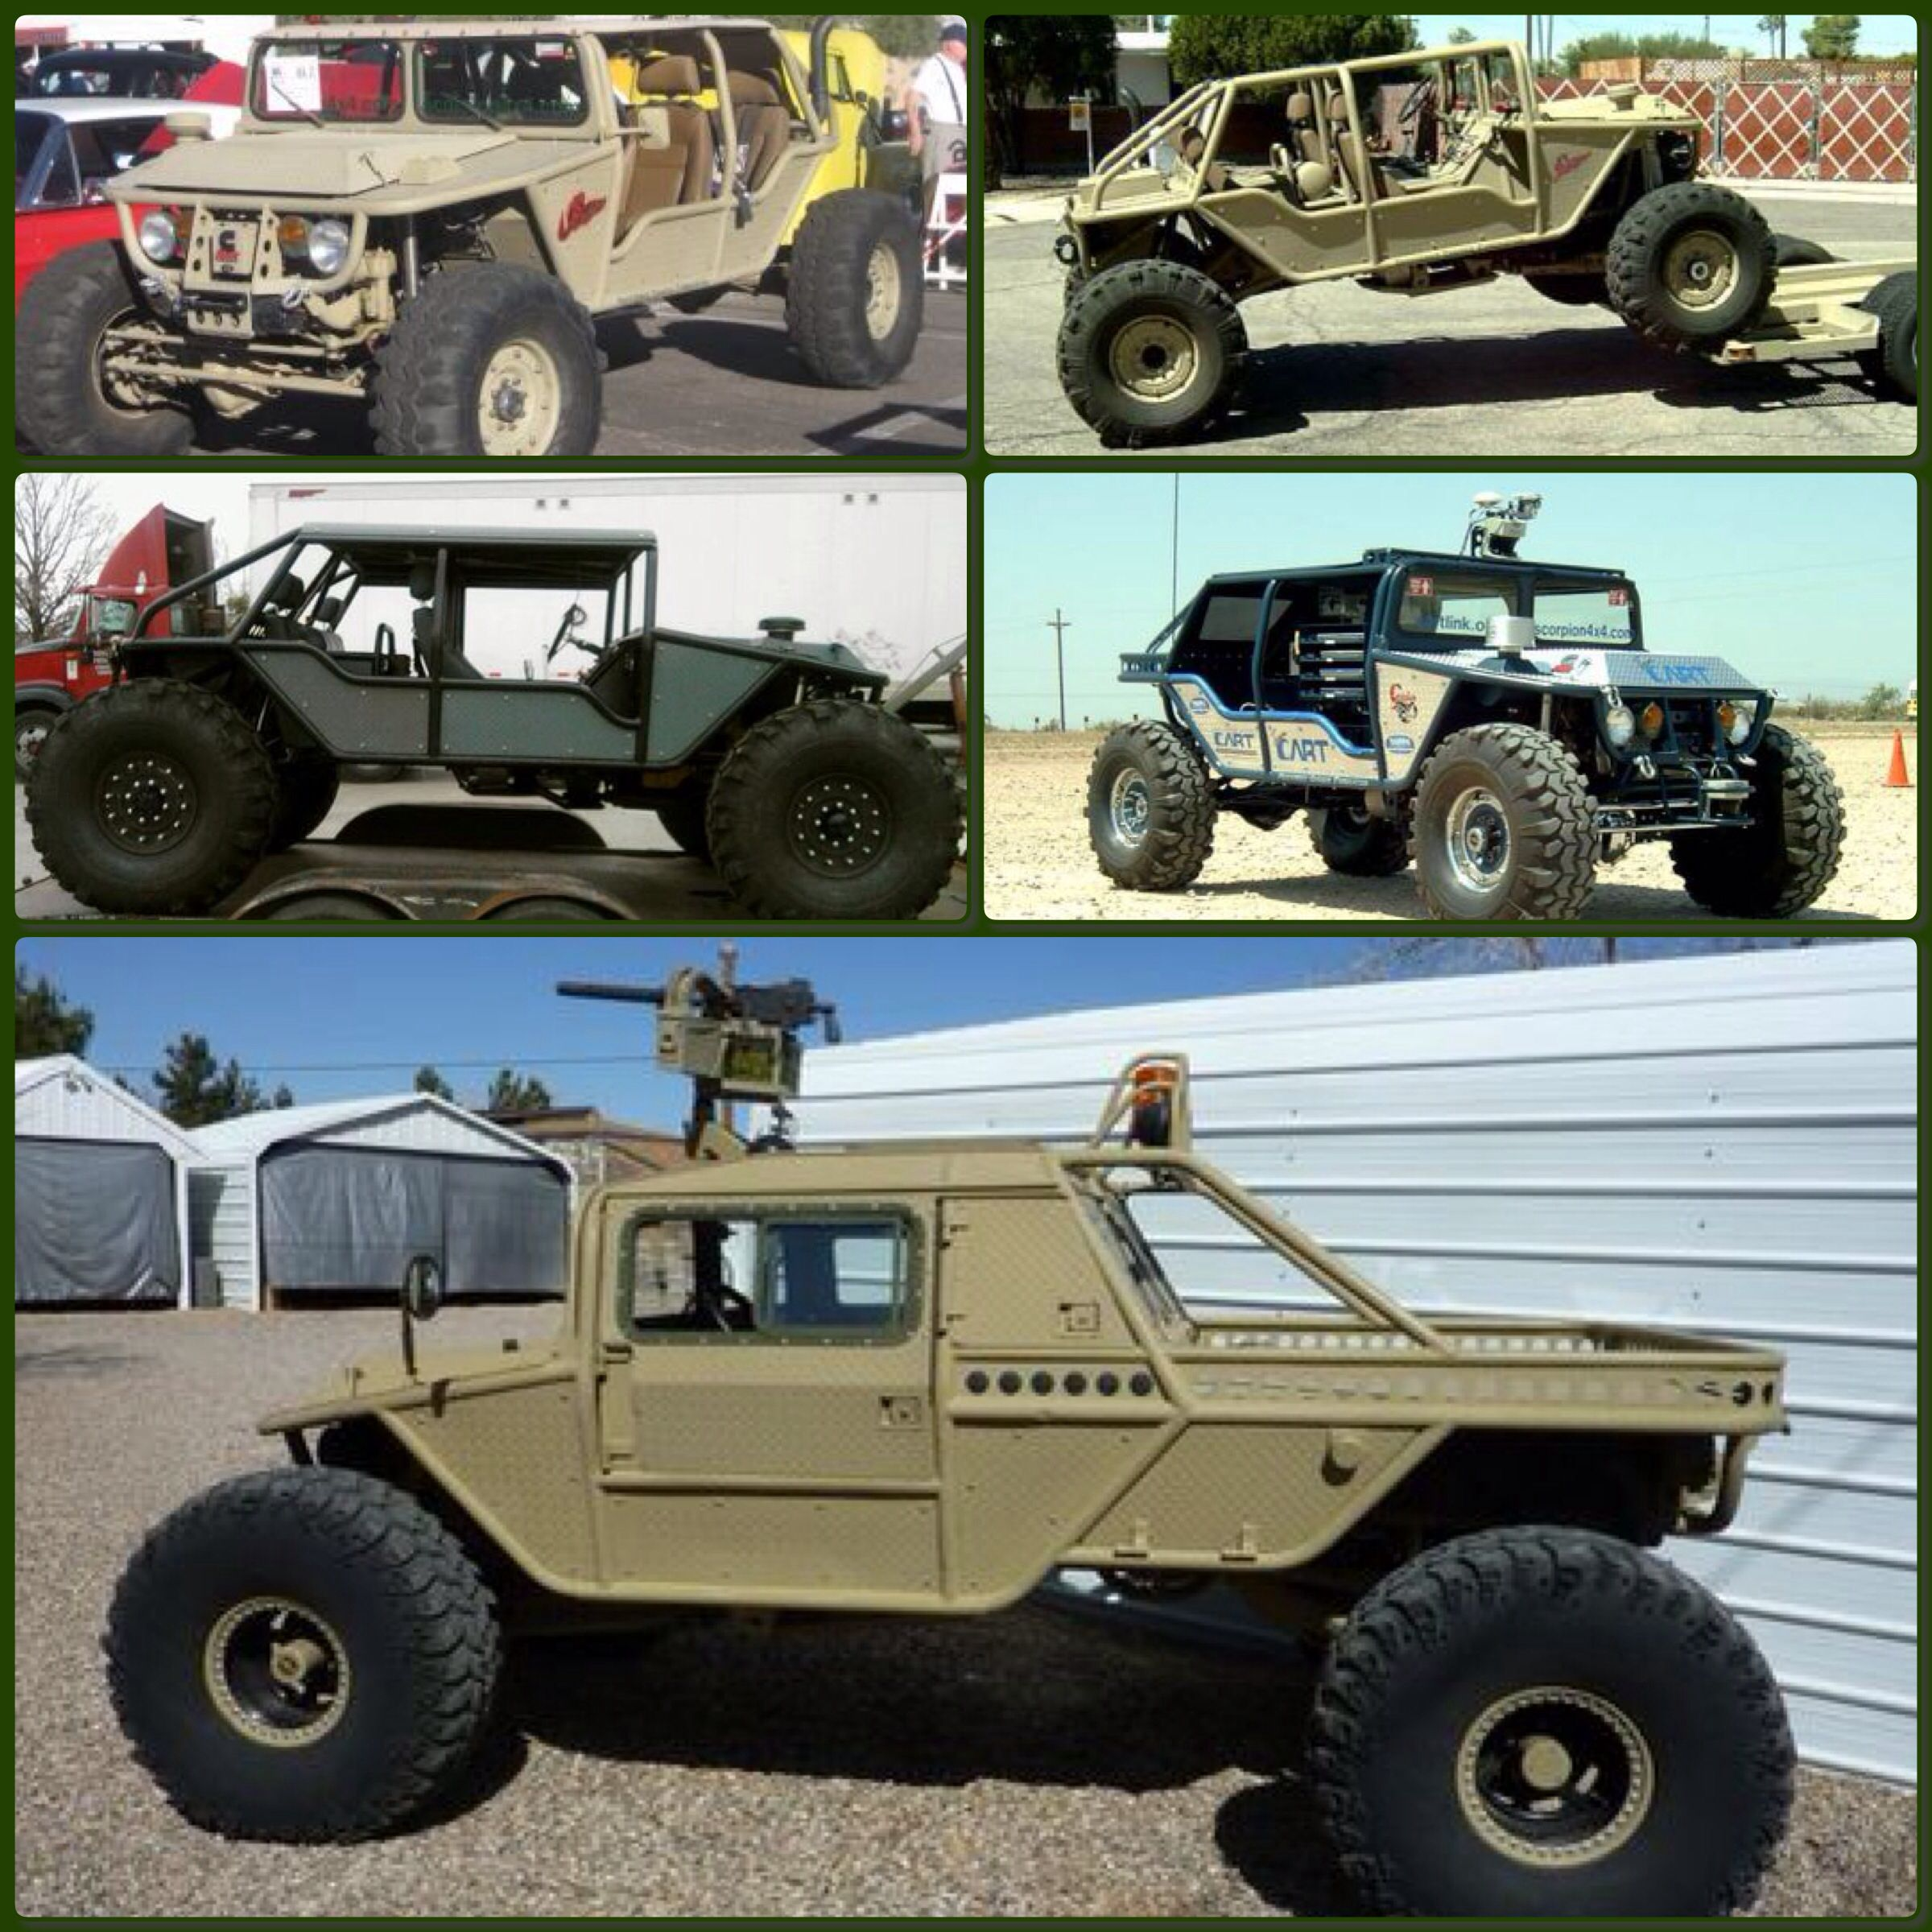 Offroad Trucks, Trucks, Army Vehicles